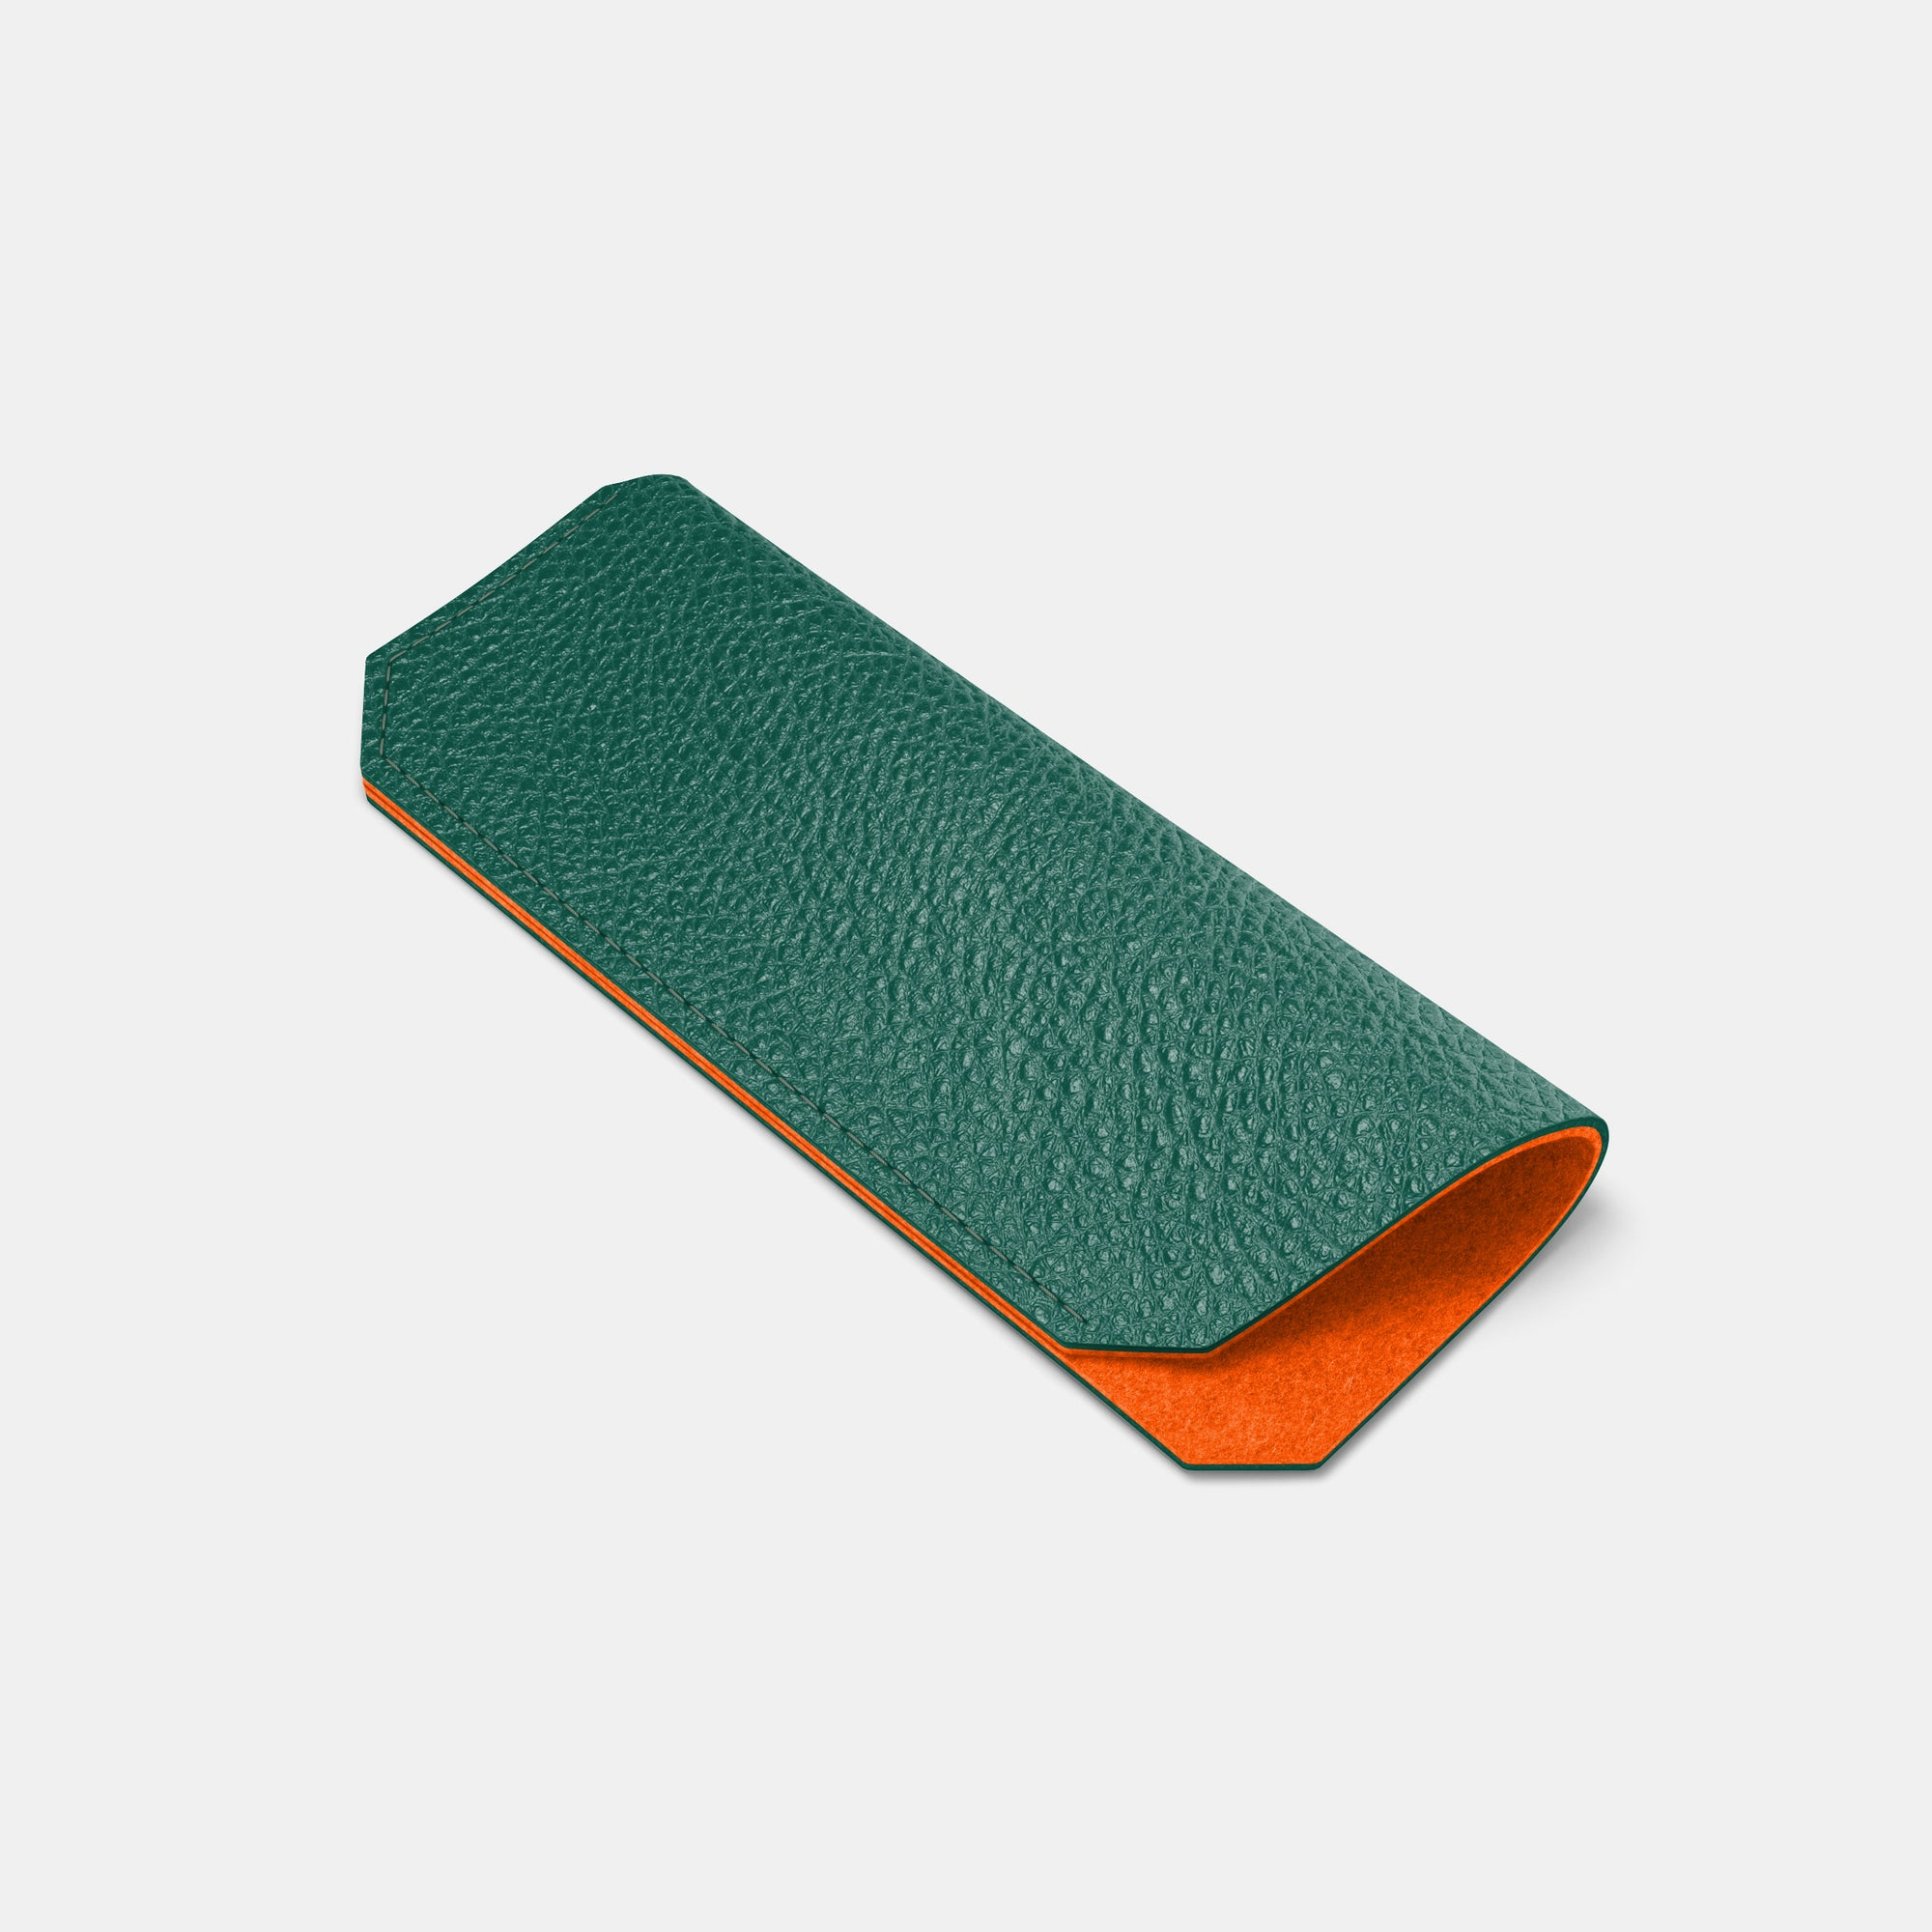 Glasses case - Avocado and Orange - RYAN London